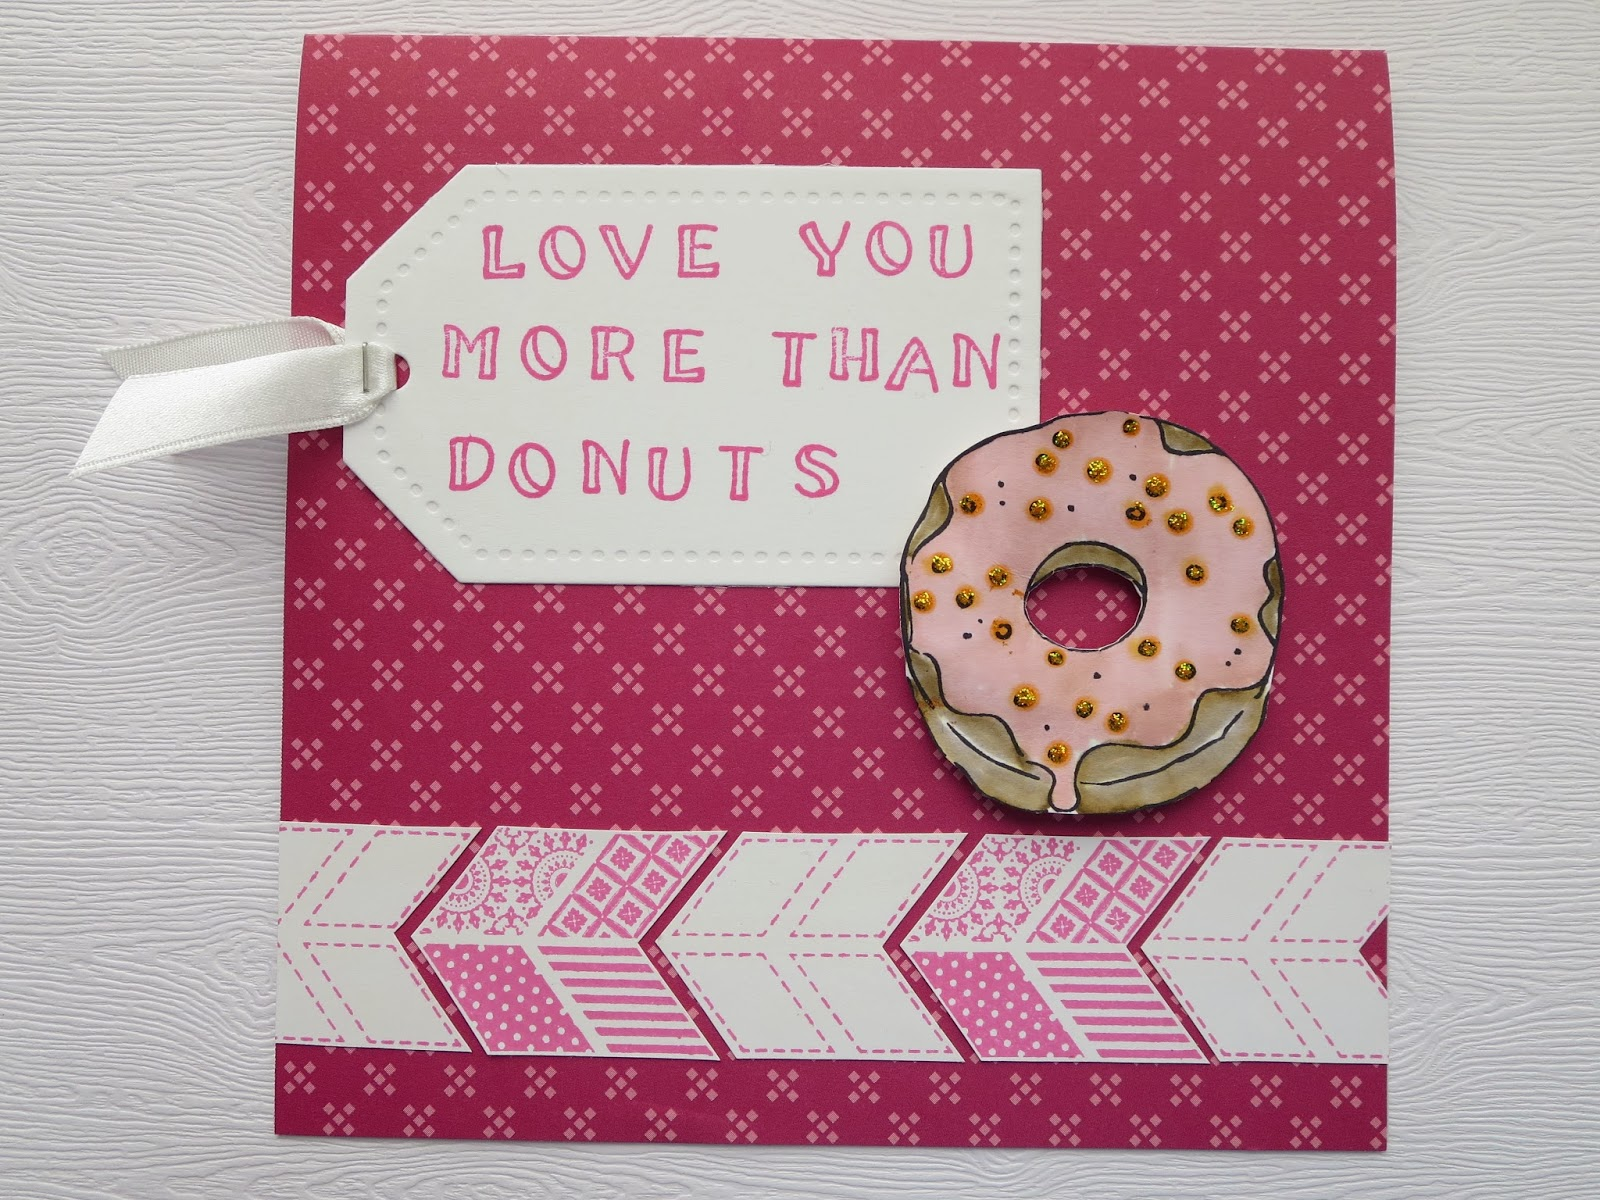 fresh crafts blog: i love you more than donuts